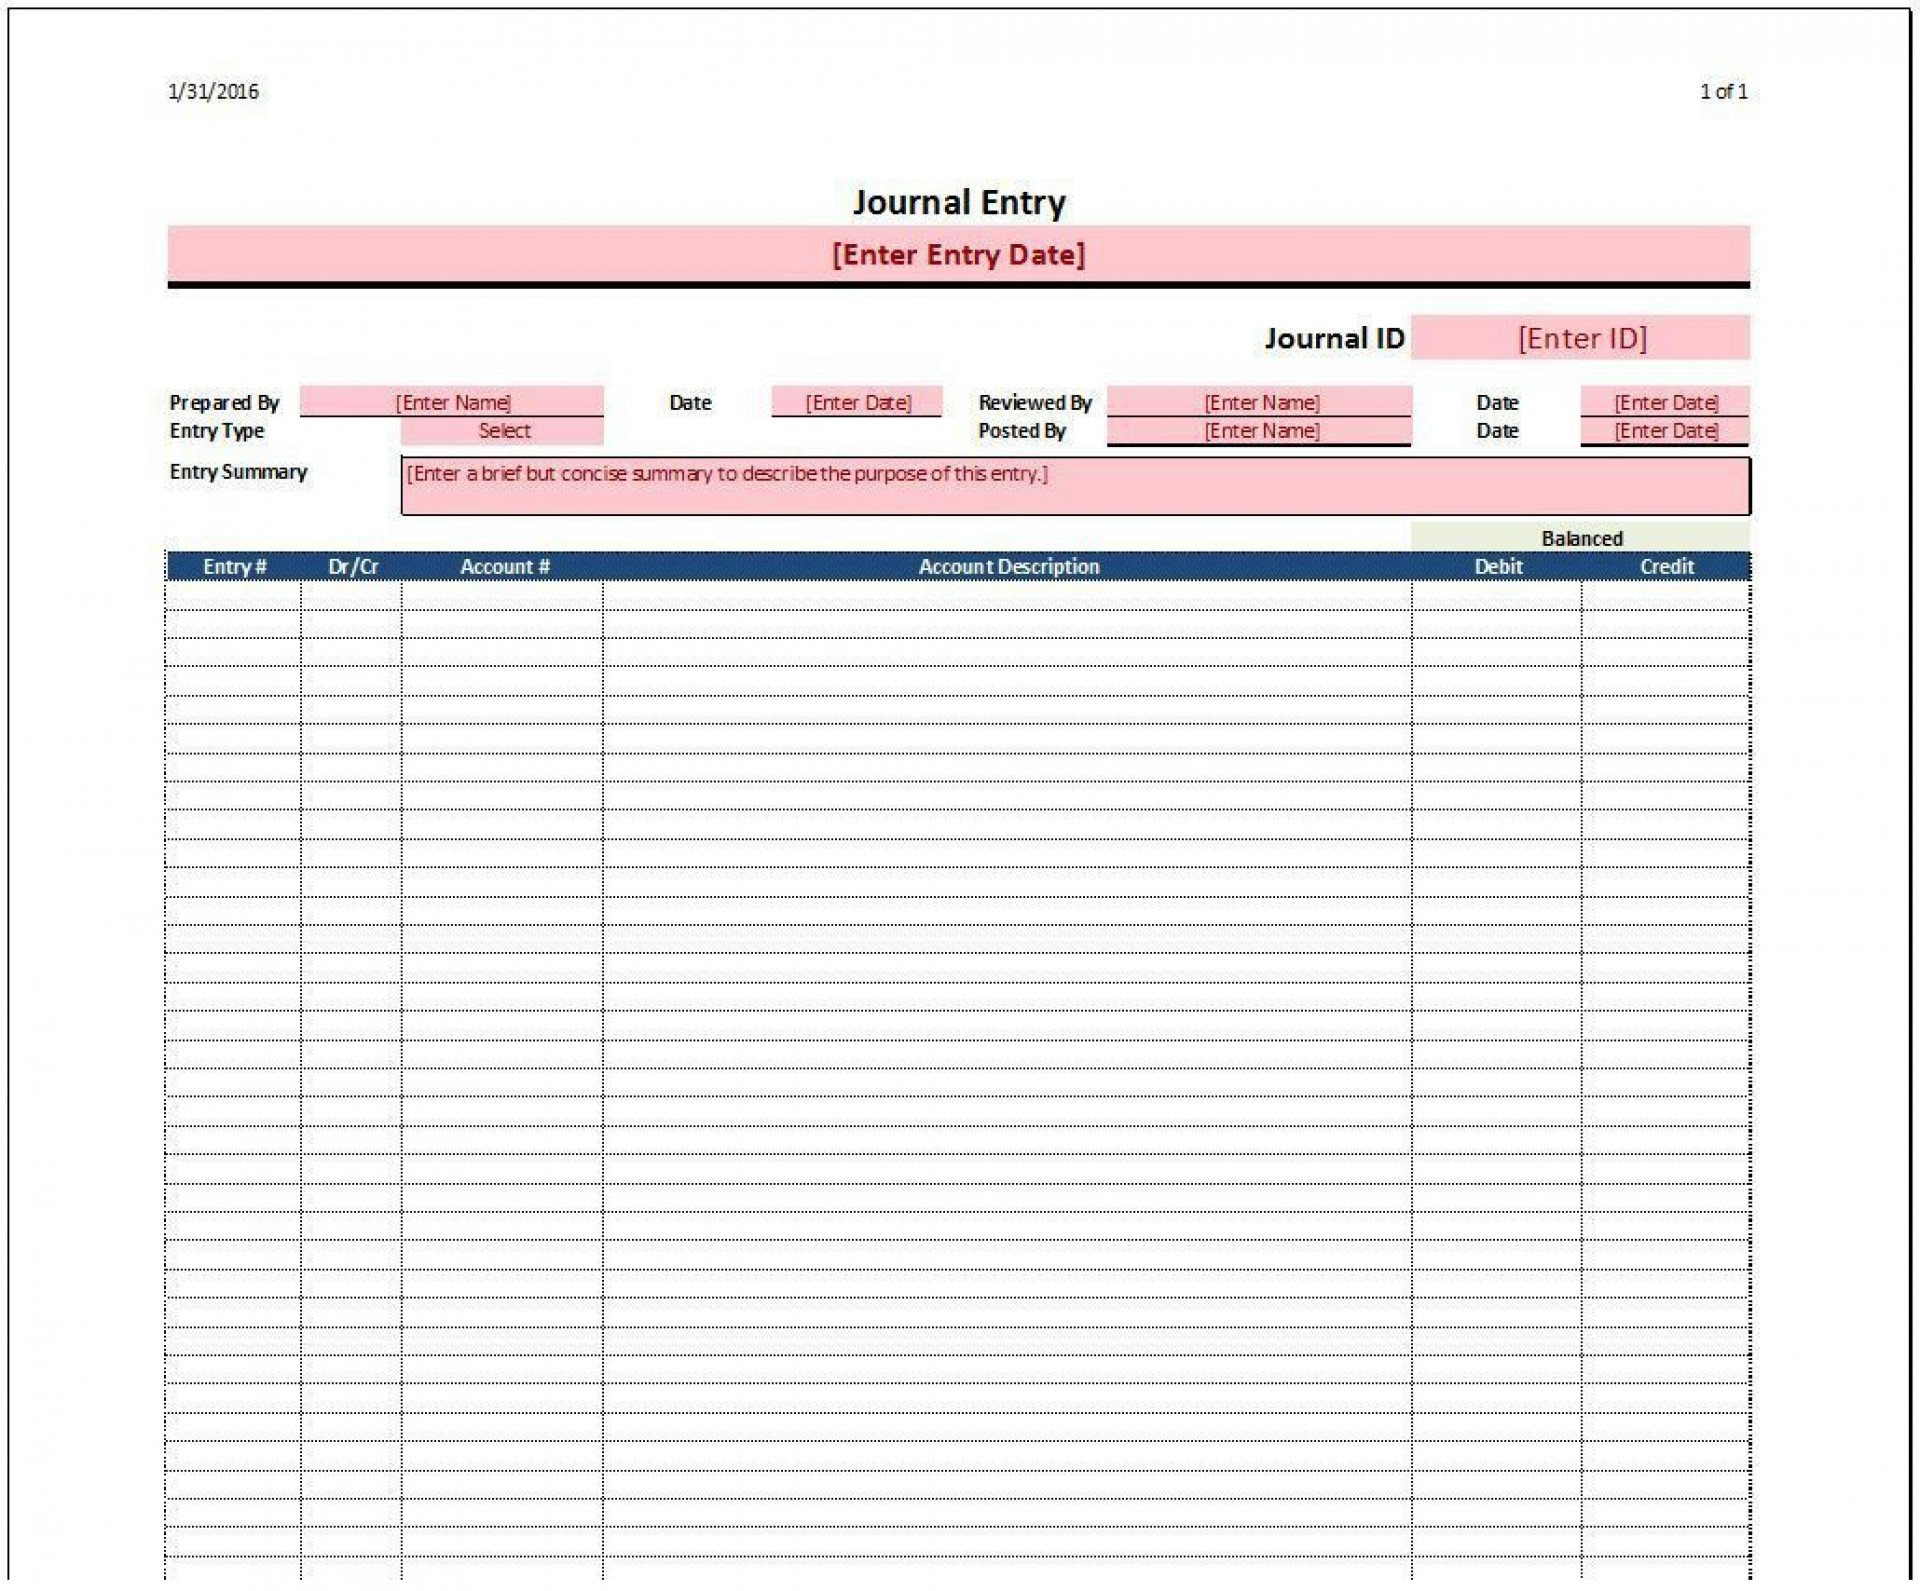 005 Formidable Accounting Journal Entry Template Inspiration  Blank Download Free1920